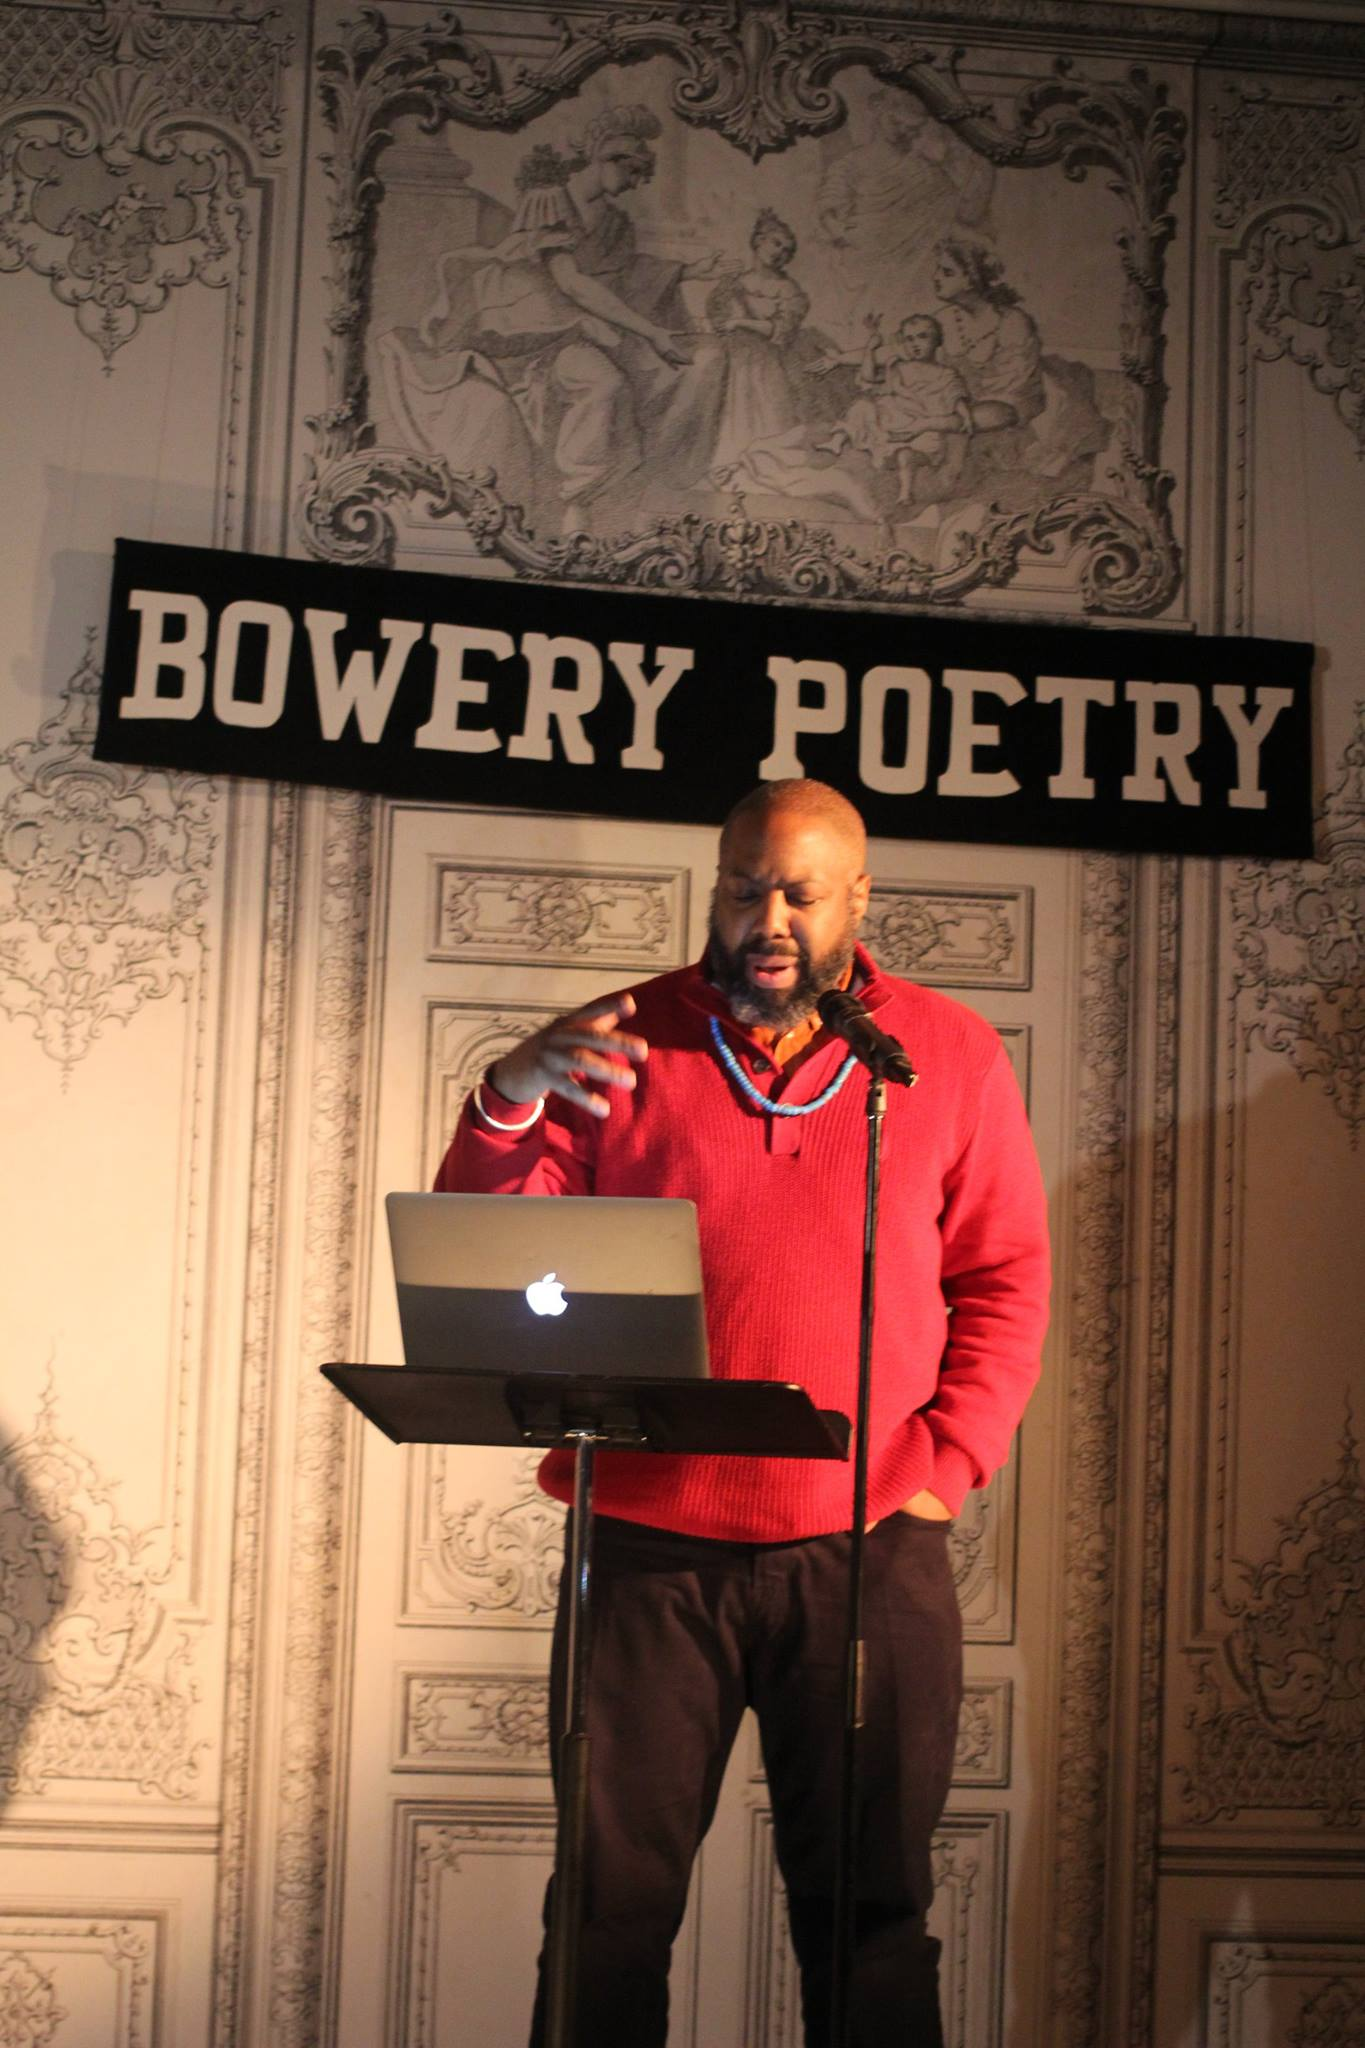 Dr. Herukhuti Performing at Bowery Poetry Cafe